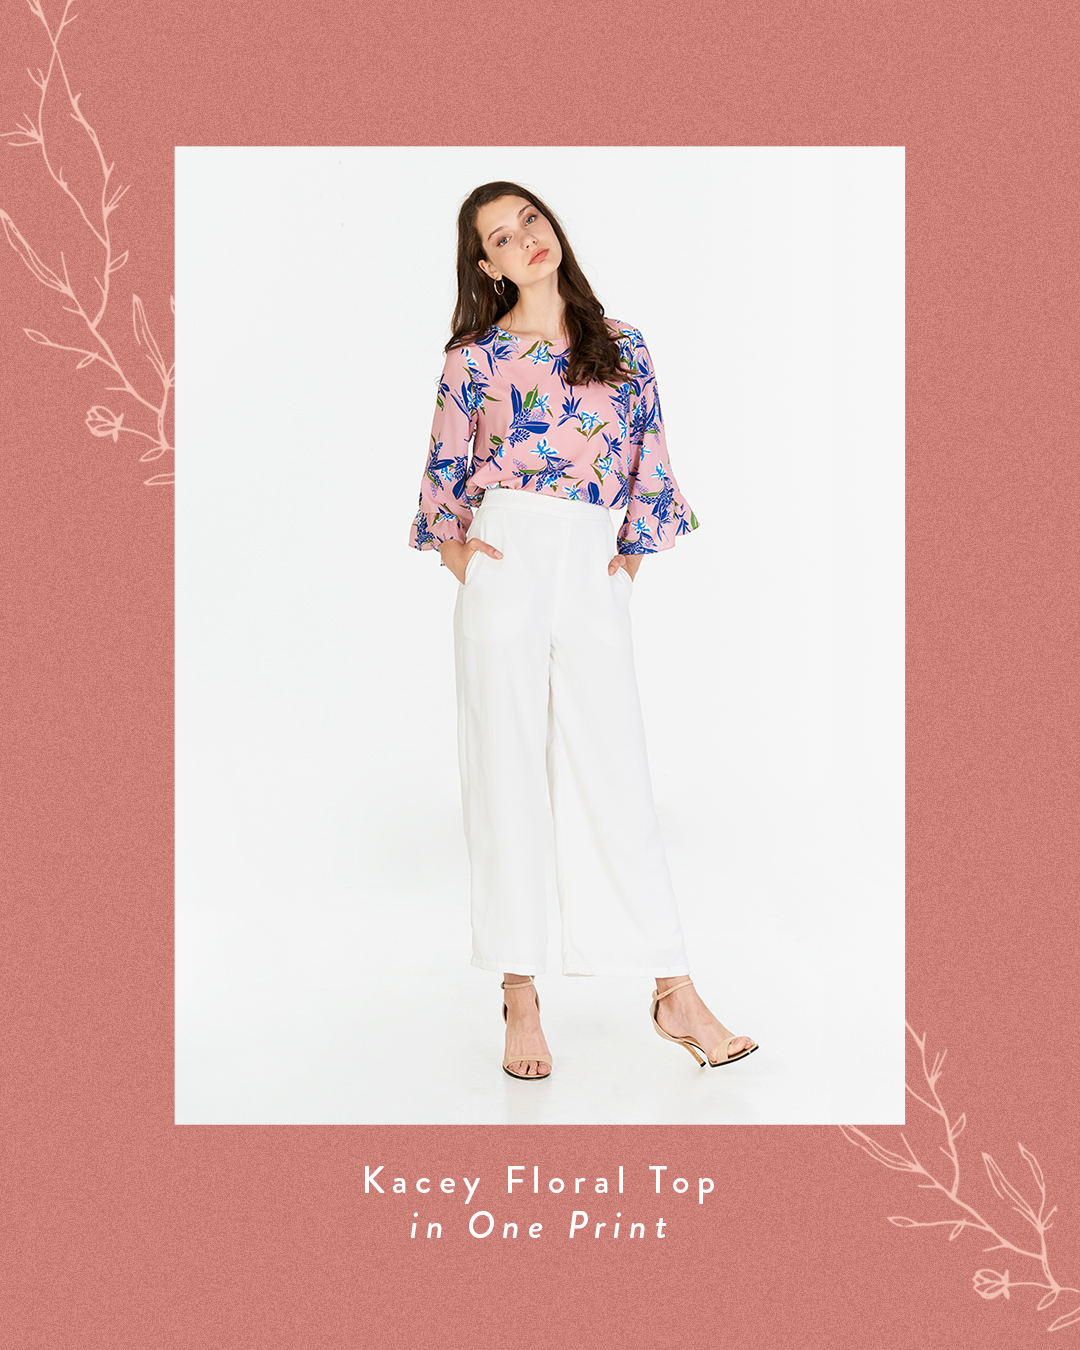 Kacey Floral Printed Top